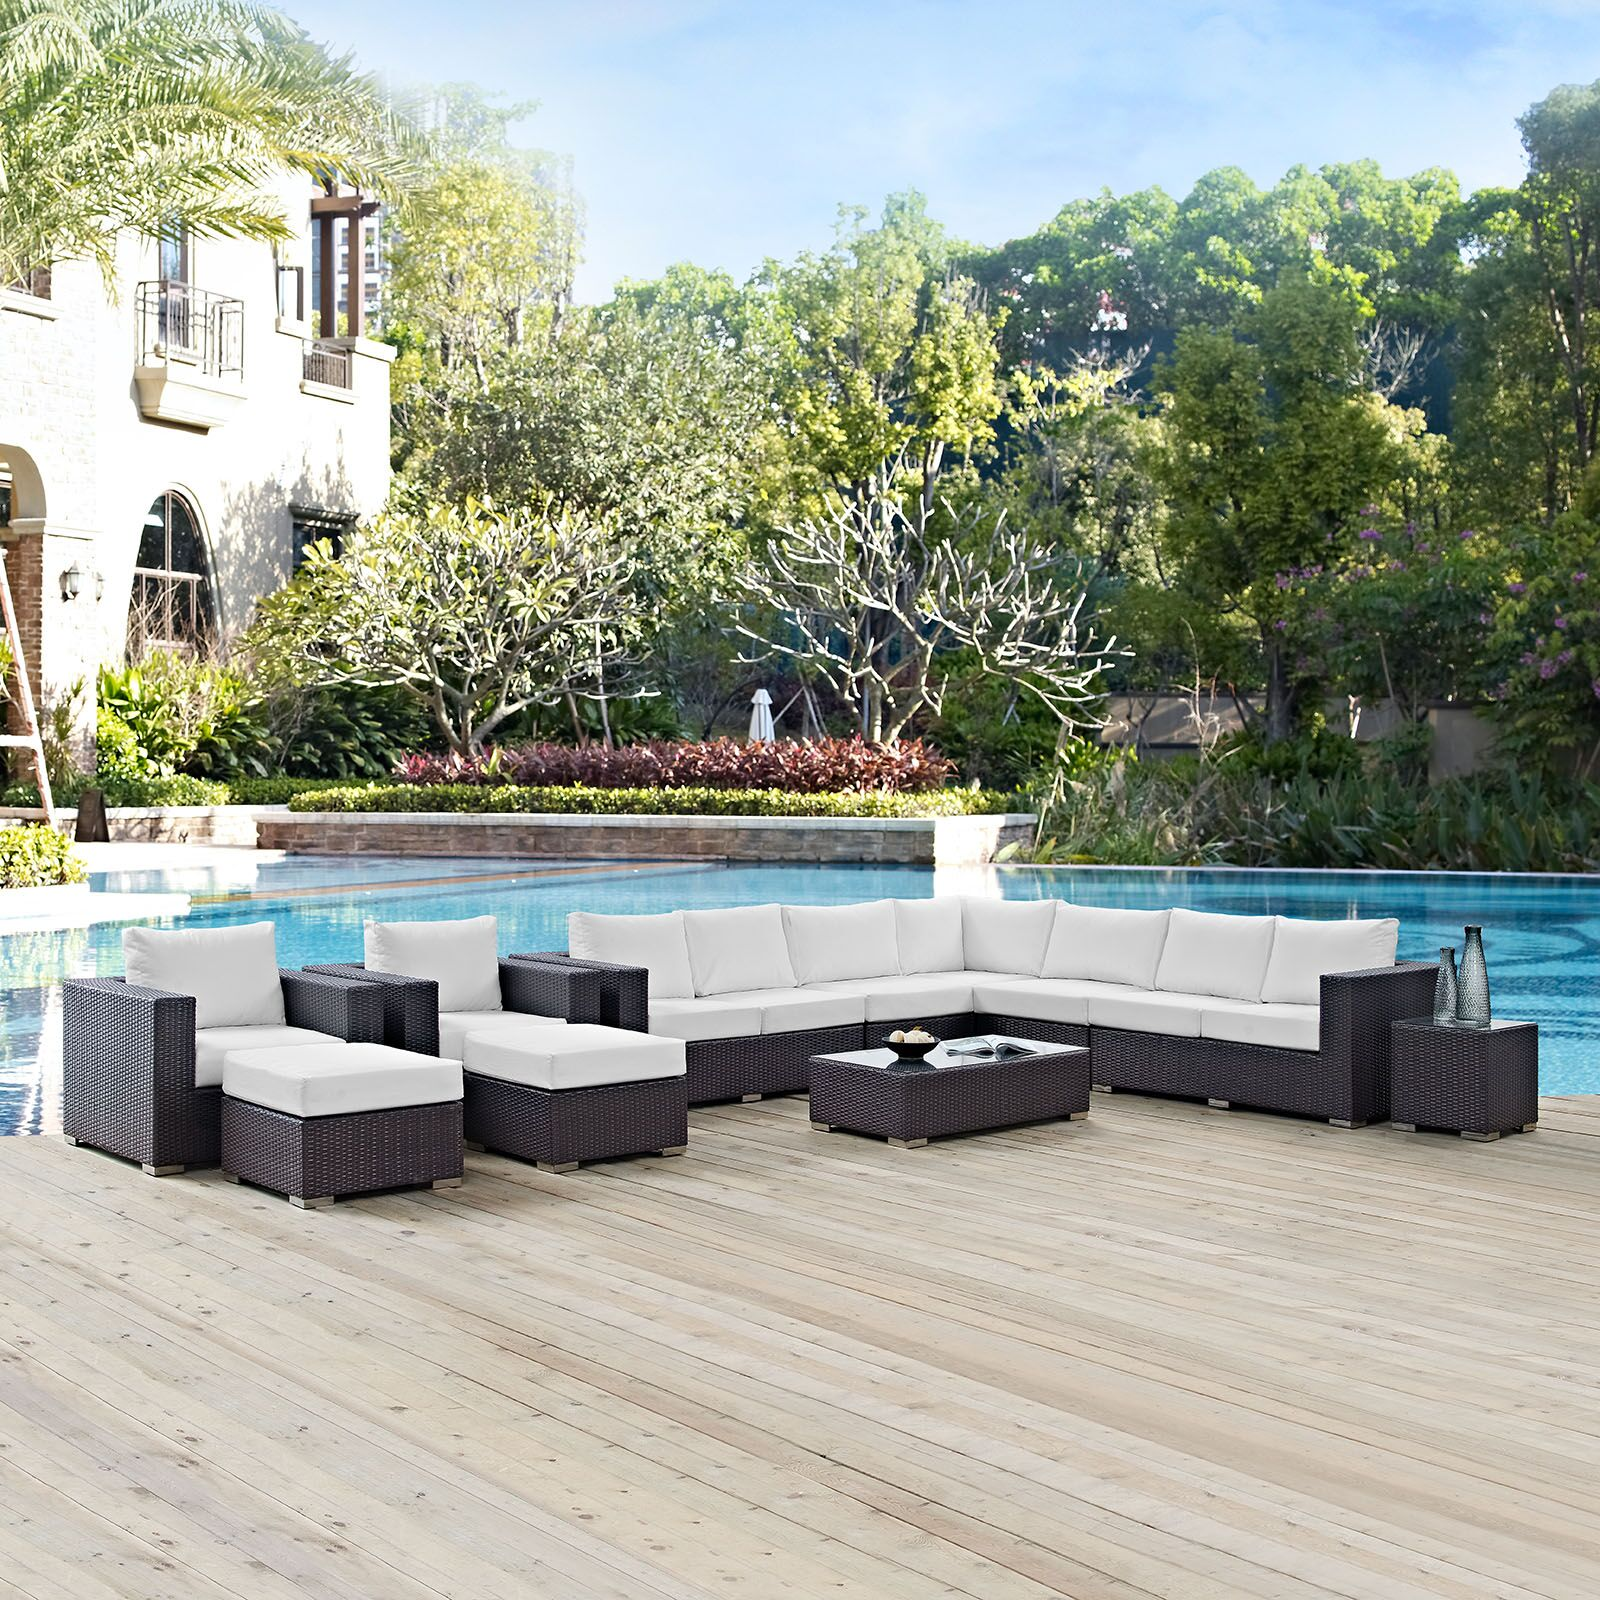 Ryele 11 Piece Rattan Sectional Set with Cushions Fabric: White